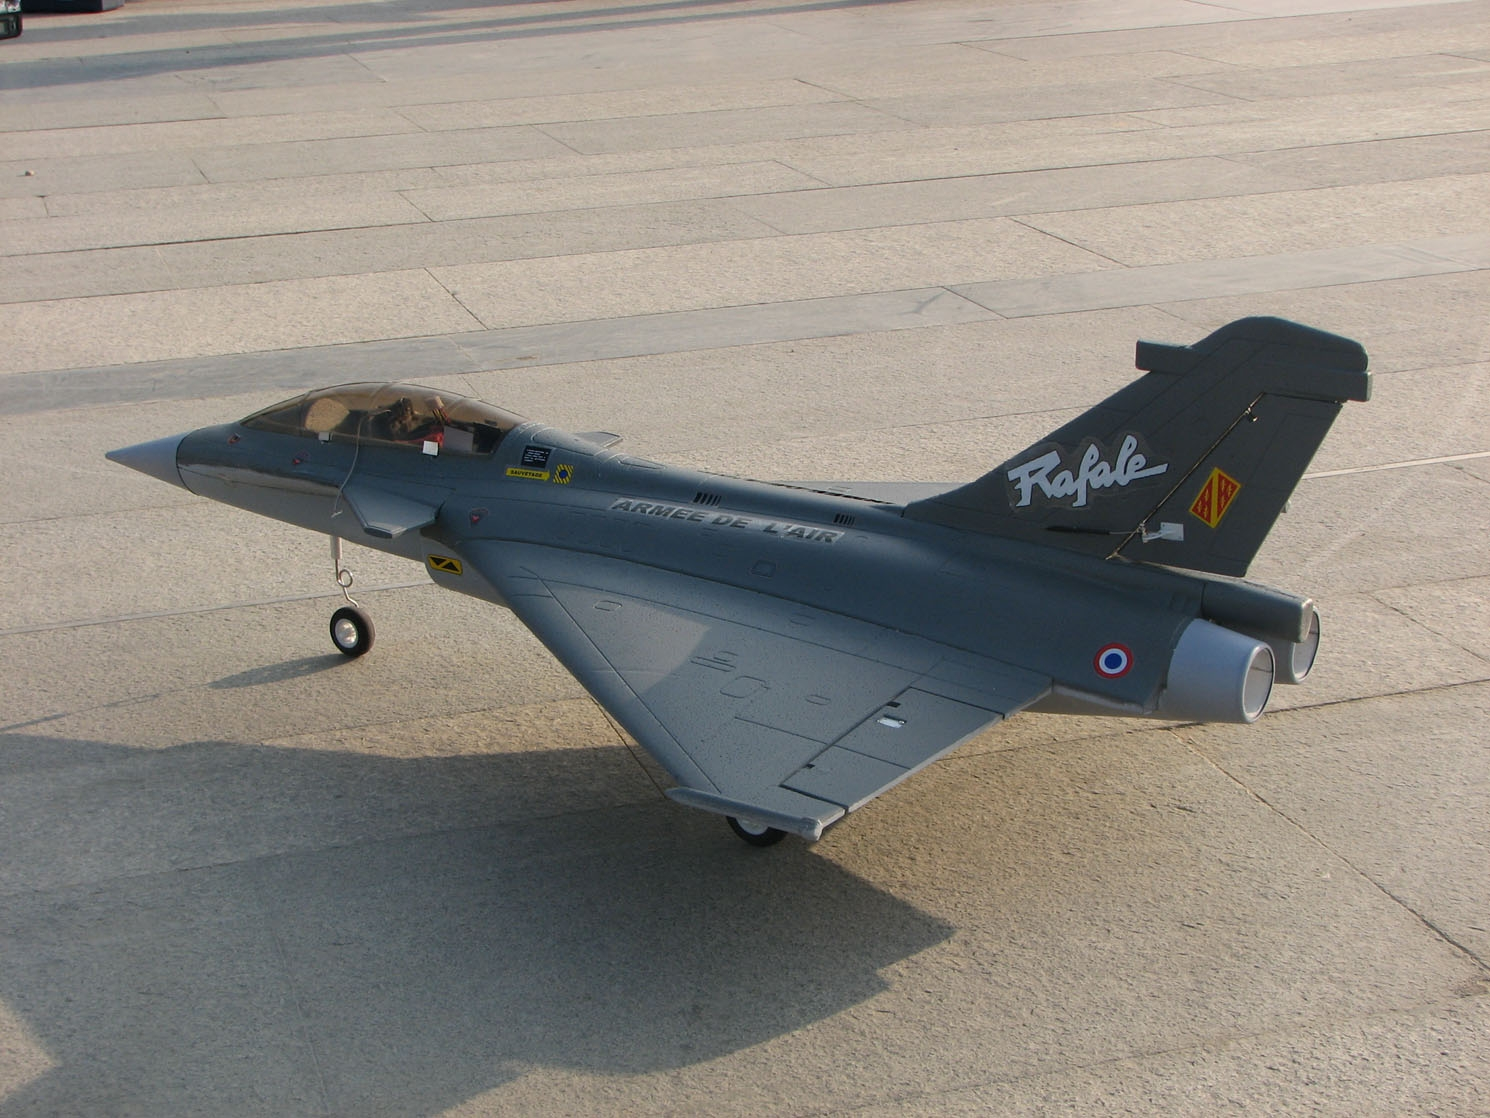 Defence Blog With News, Images, And